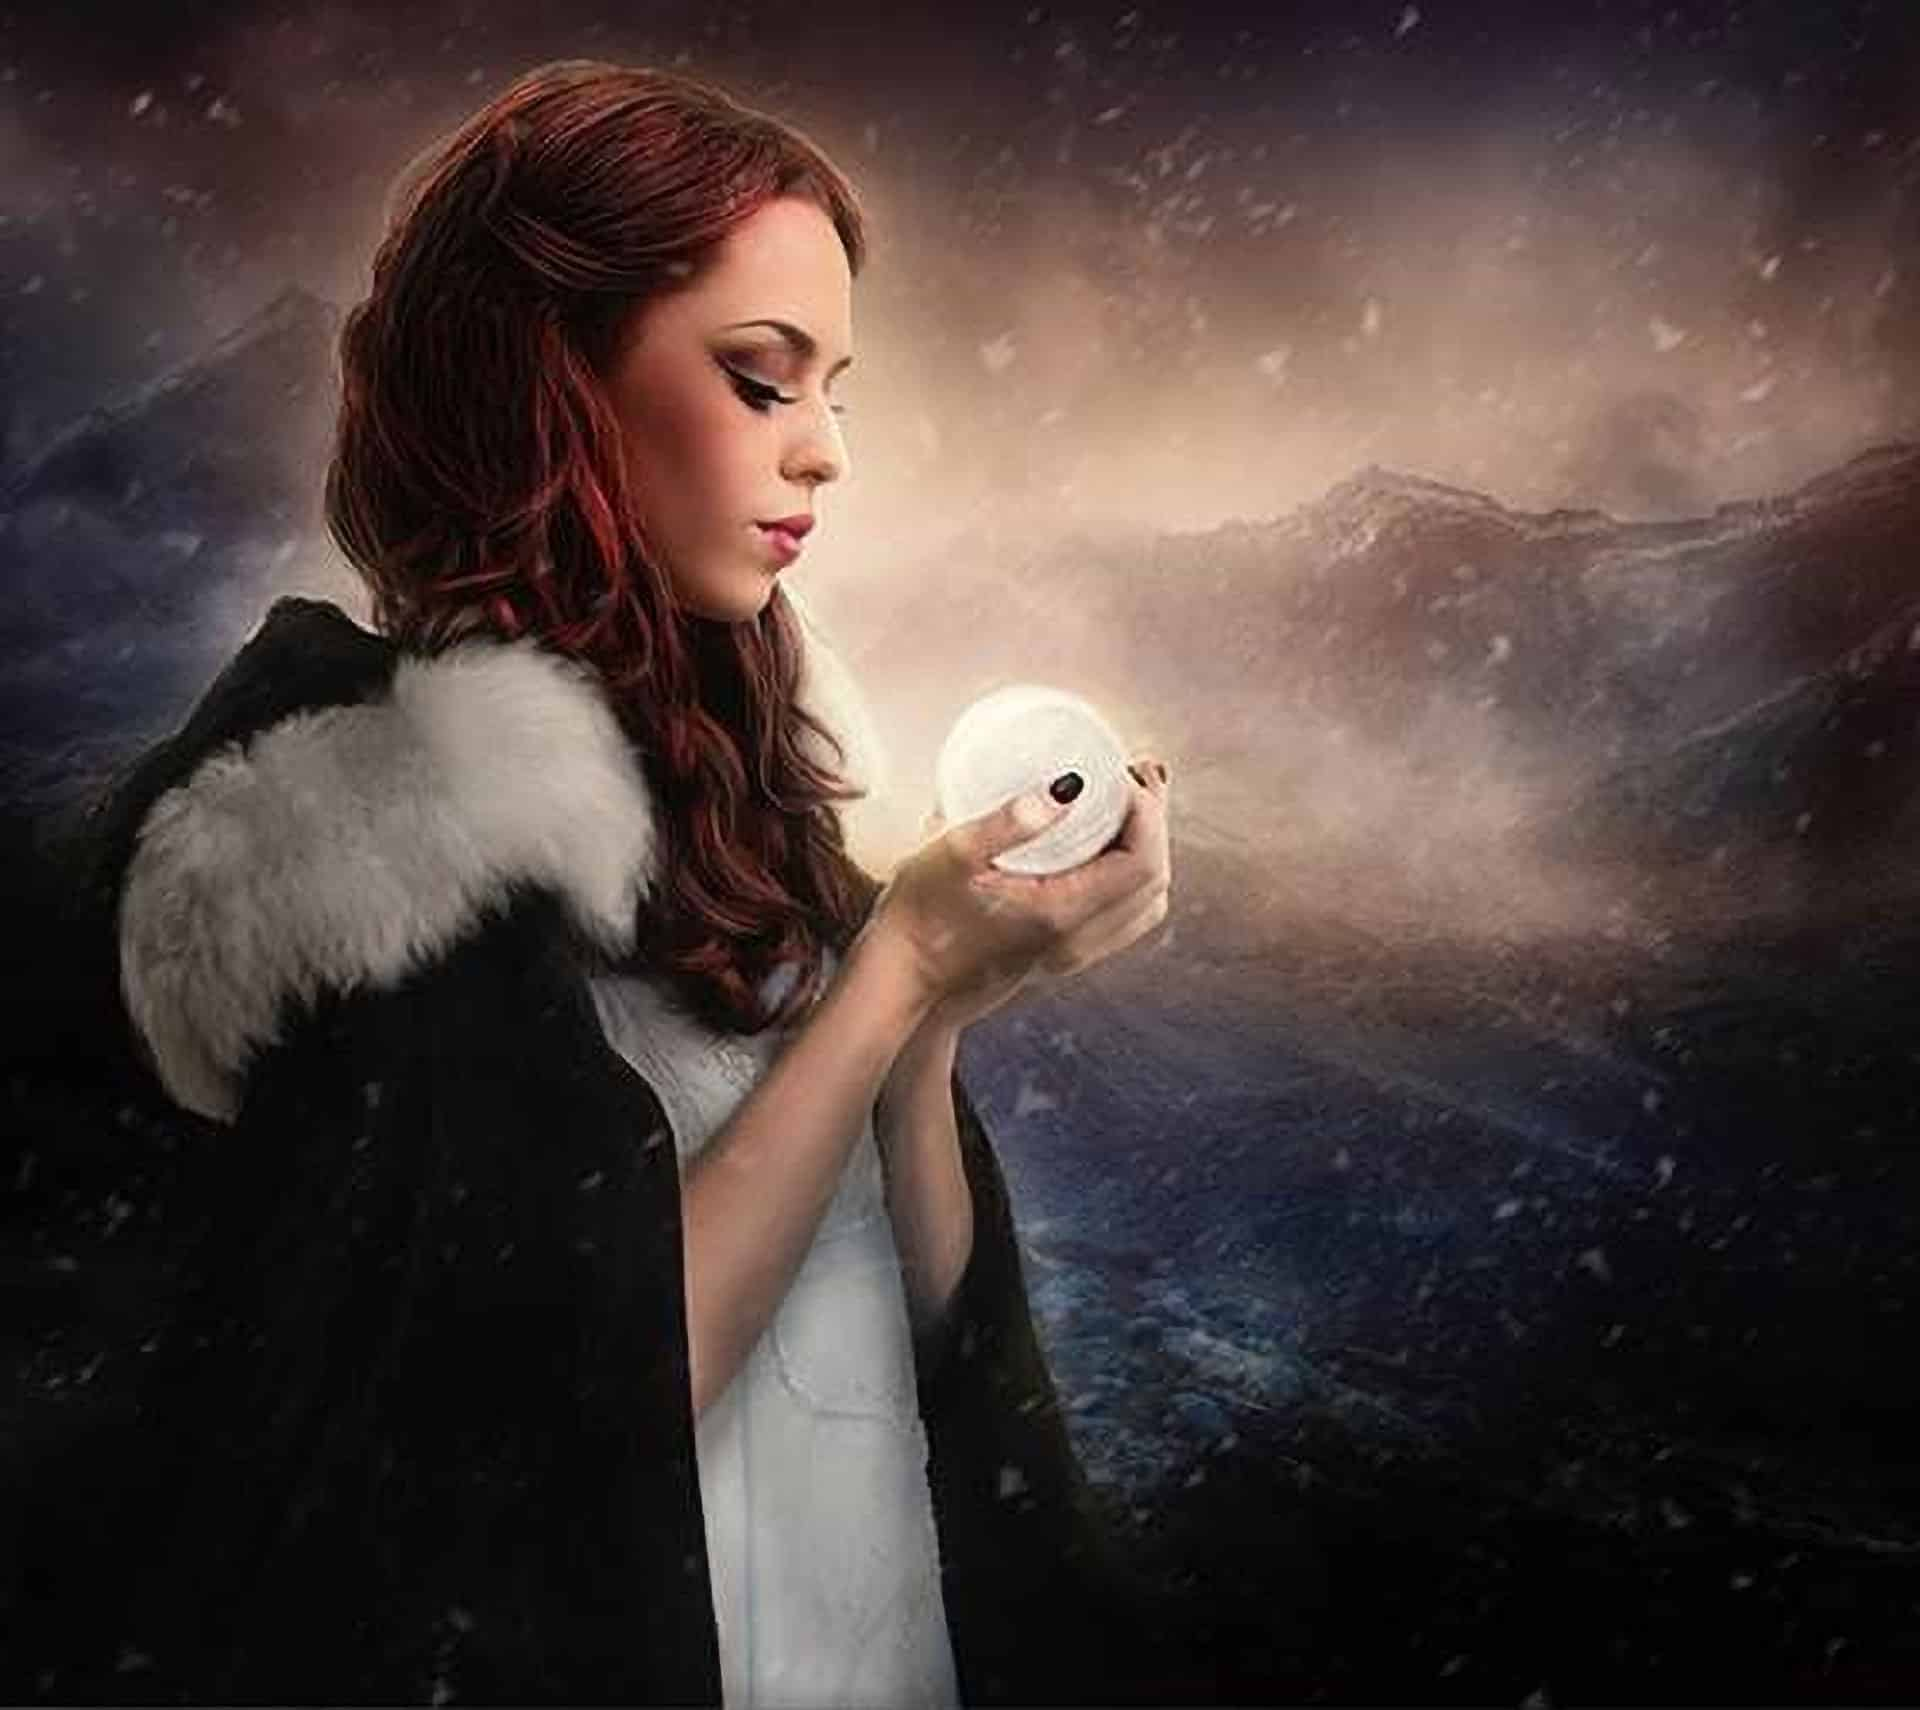 Create a Surreal Game of Thrones Photo Manipulation